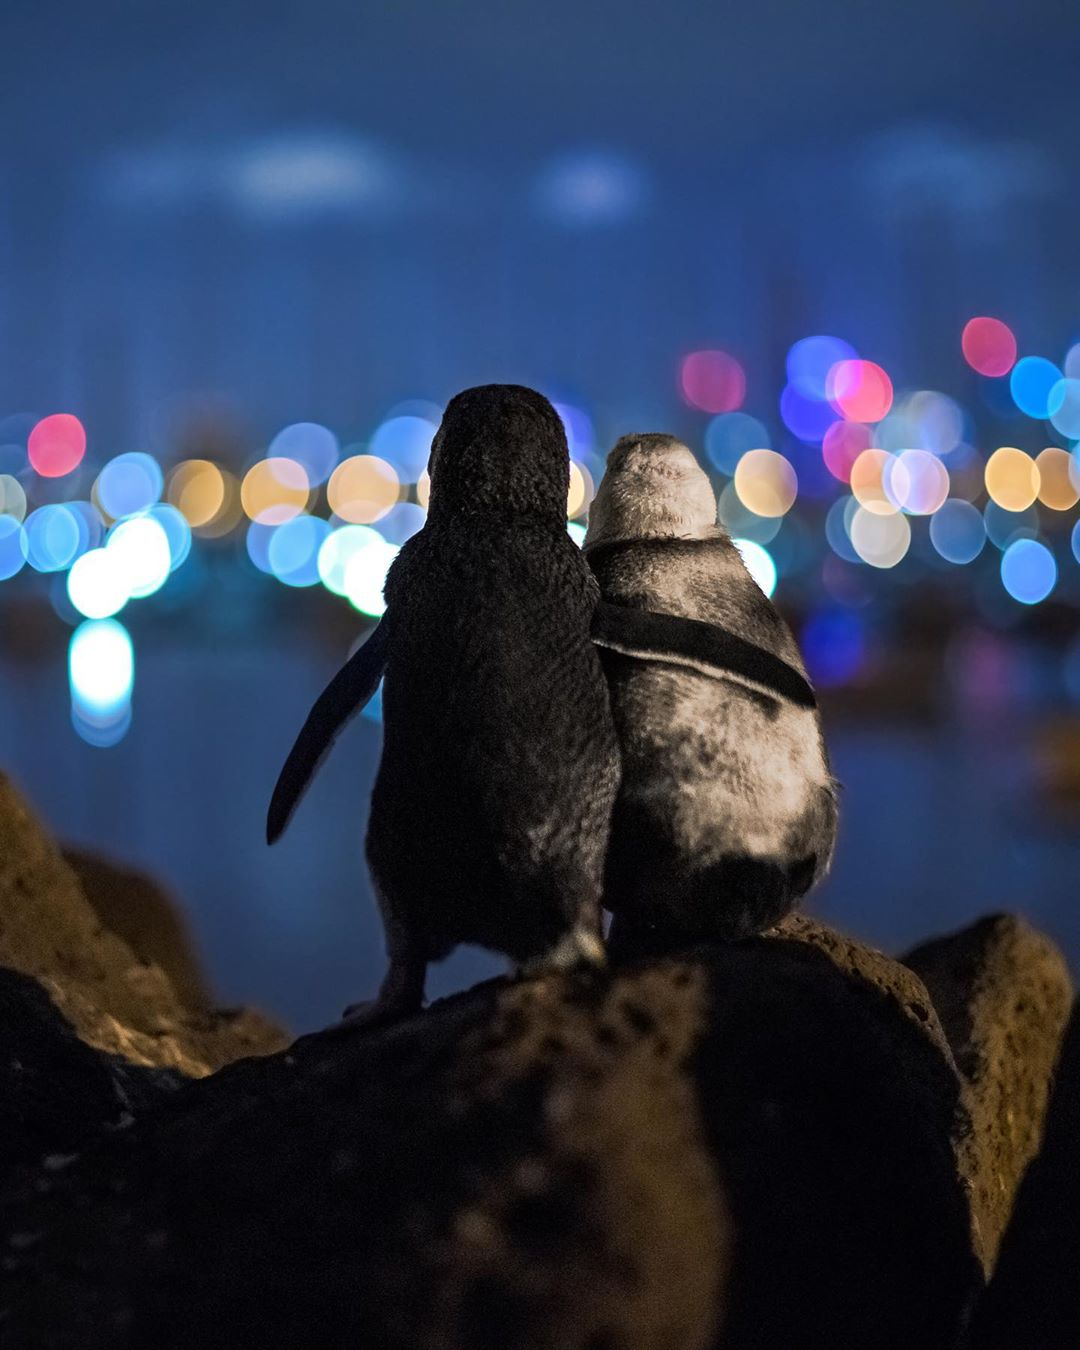 Cute Fairy Penguins Embracing Each Other in Melbourne